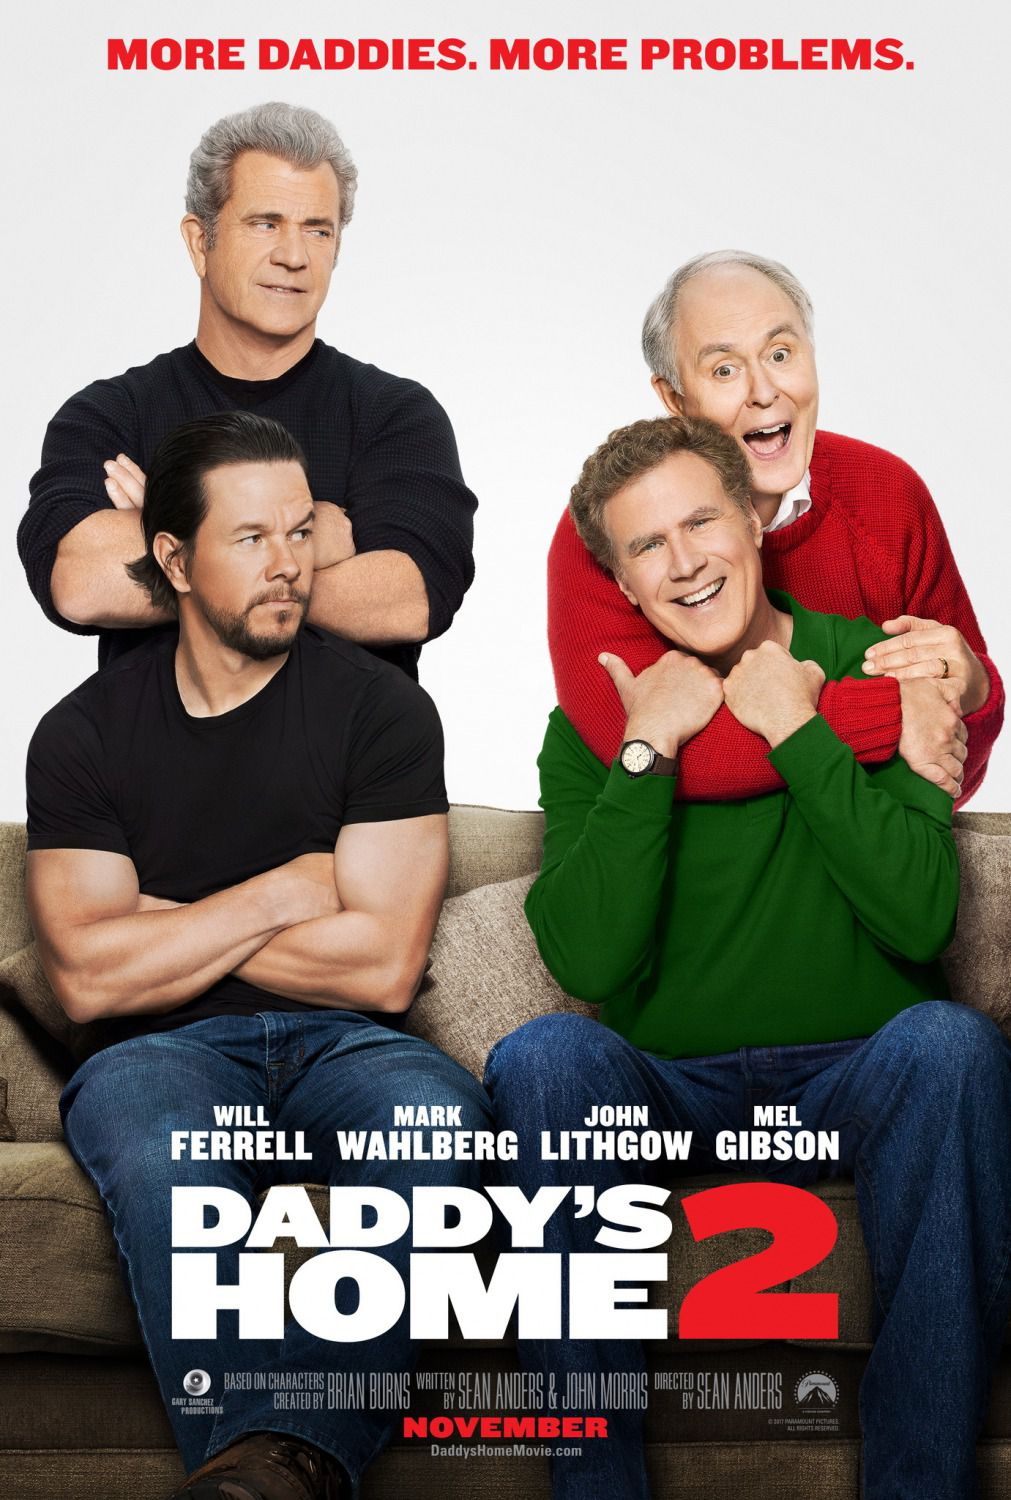 Daddys Home two - Daddy's Home 2 ... more Daddies, more Problems ... - Will Ferrell - Mark Wahlberg - John Lithgow - Mel Gibson - film poster